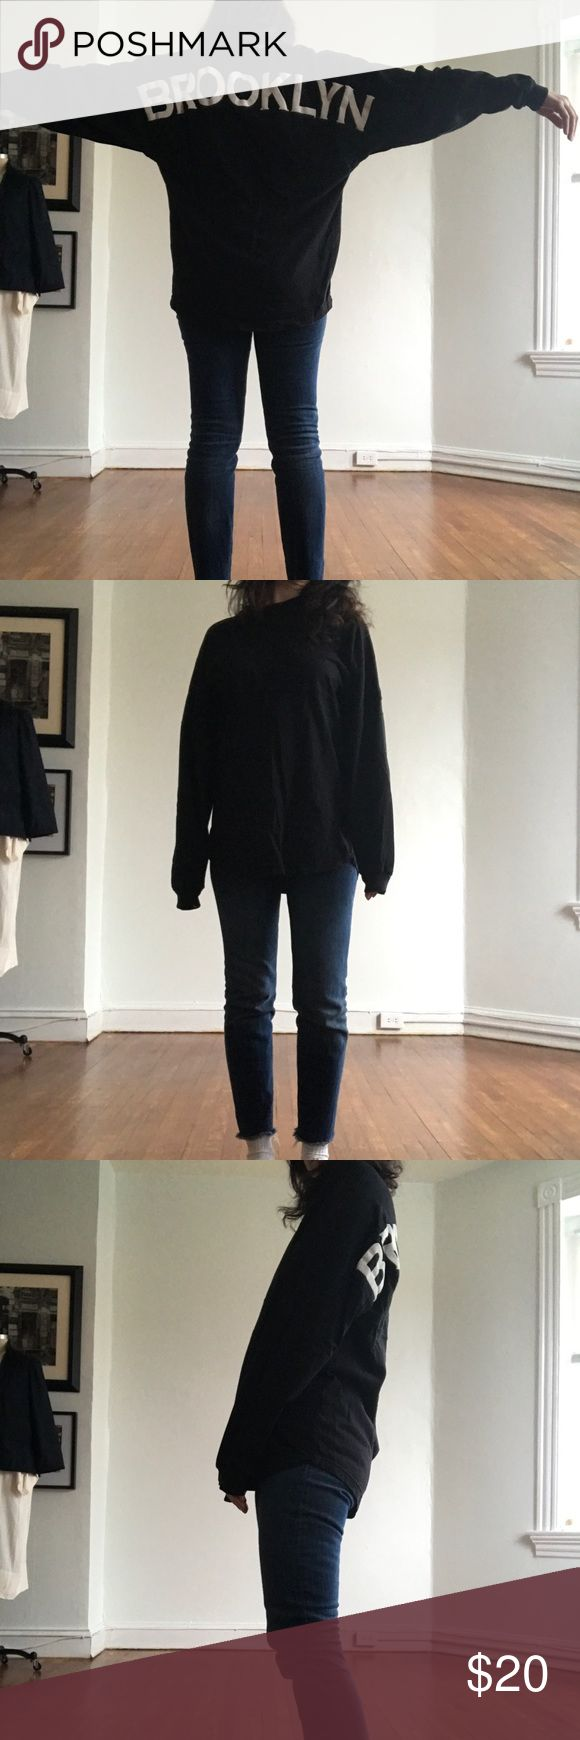 "Oversized black long sleeve top Fun oversized long sleeve top. Purchased at famous Patricia Fields store in NYC. Back graphic is white puffy in that reads Brooklyn. Size small but it is oversized. I am 5'5"". Tops Tees - Long Sleeve"